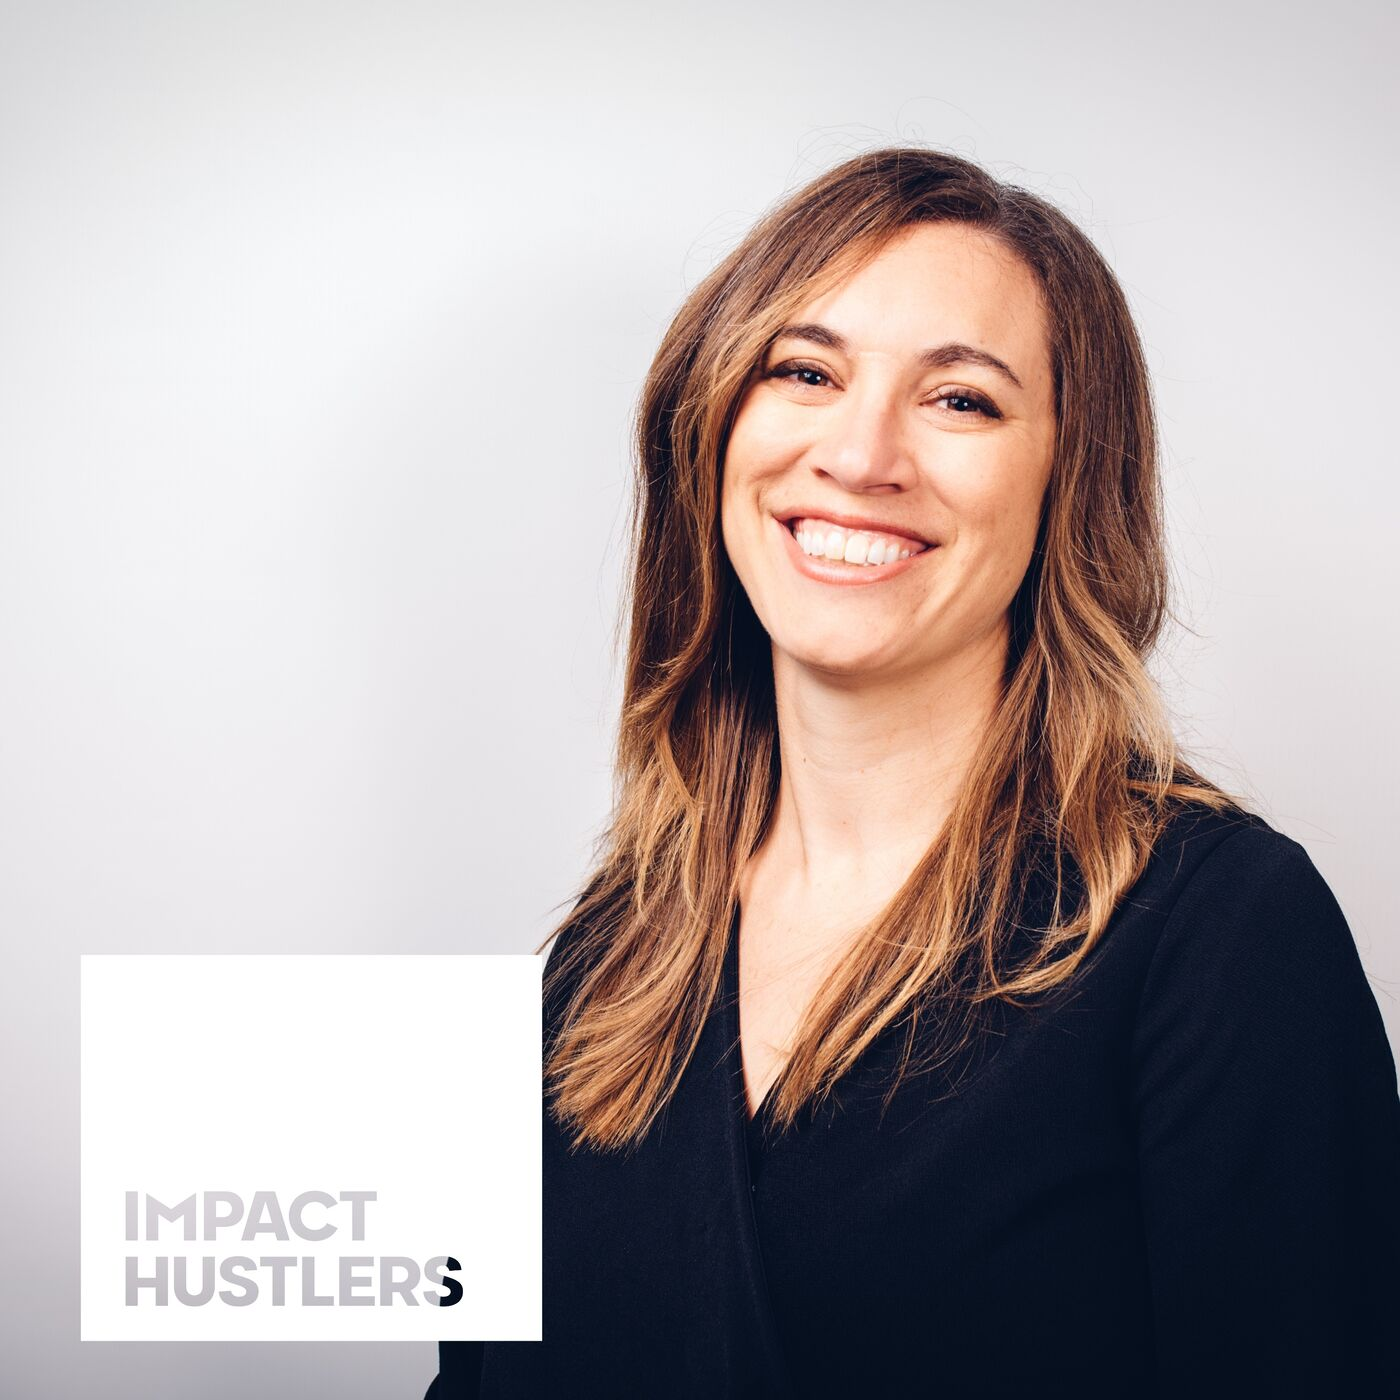 68: Fighting Climate Change Through Place-Based Innovation - Dawn Lippert of Elemental